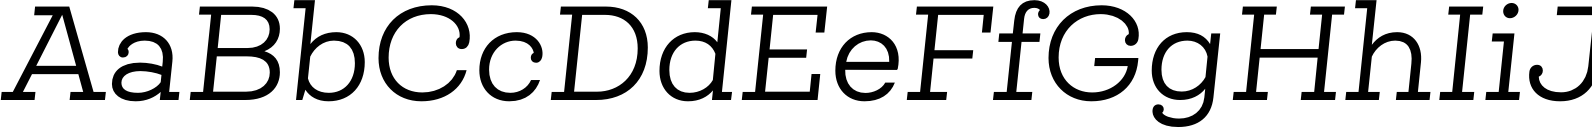 Queulat Alt Regular Italic Font